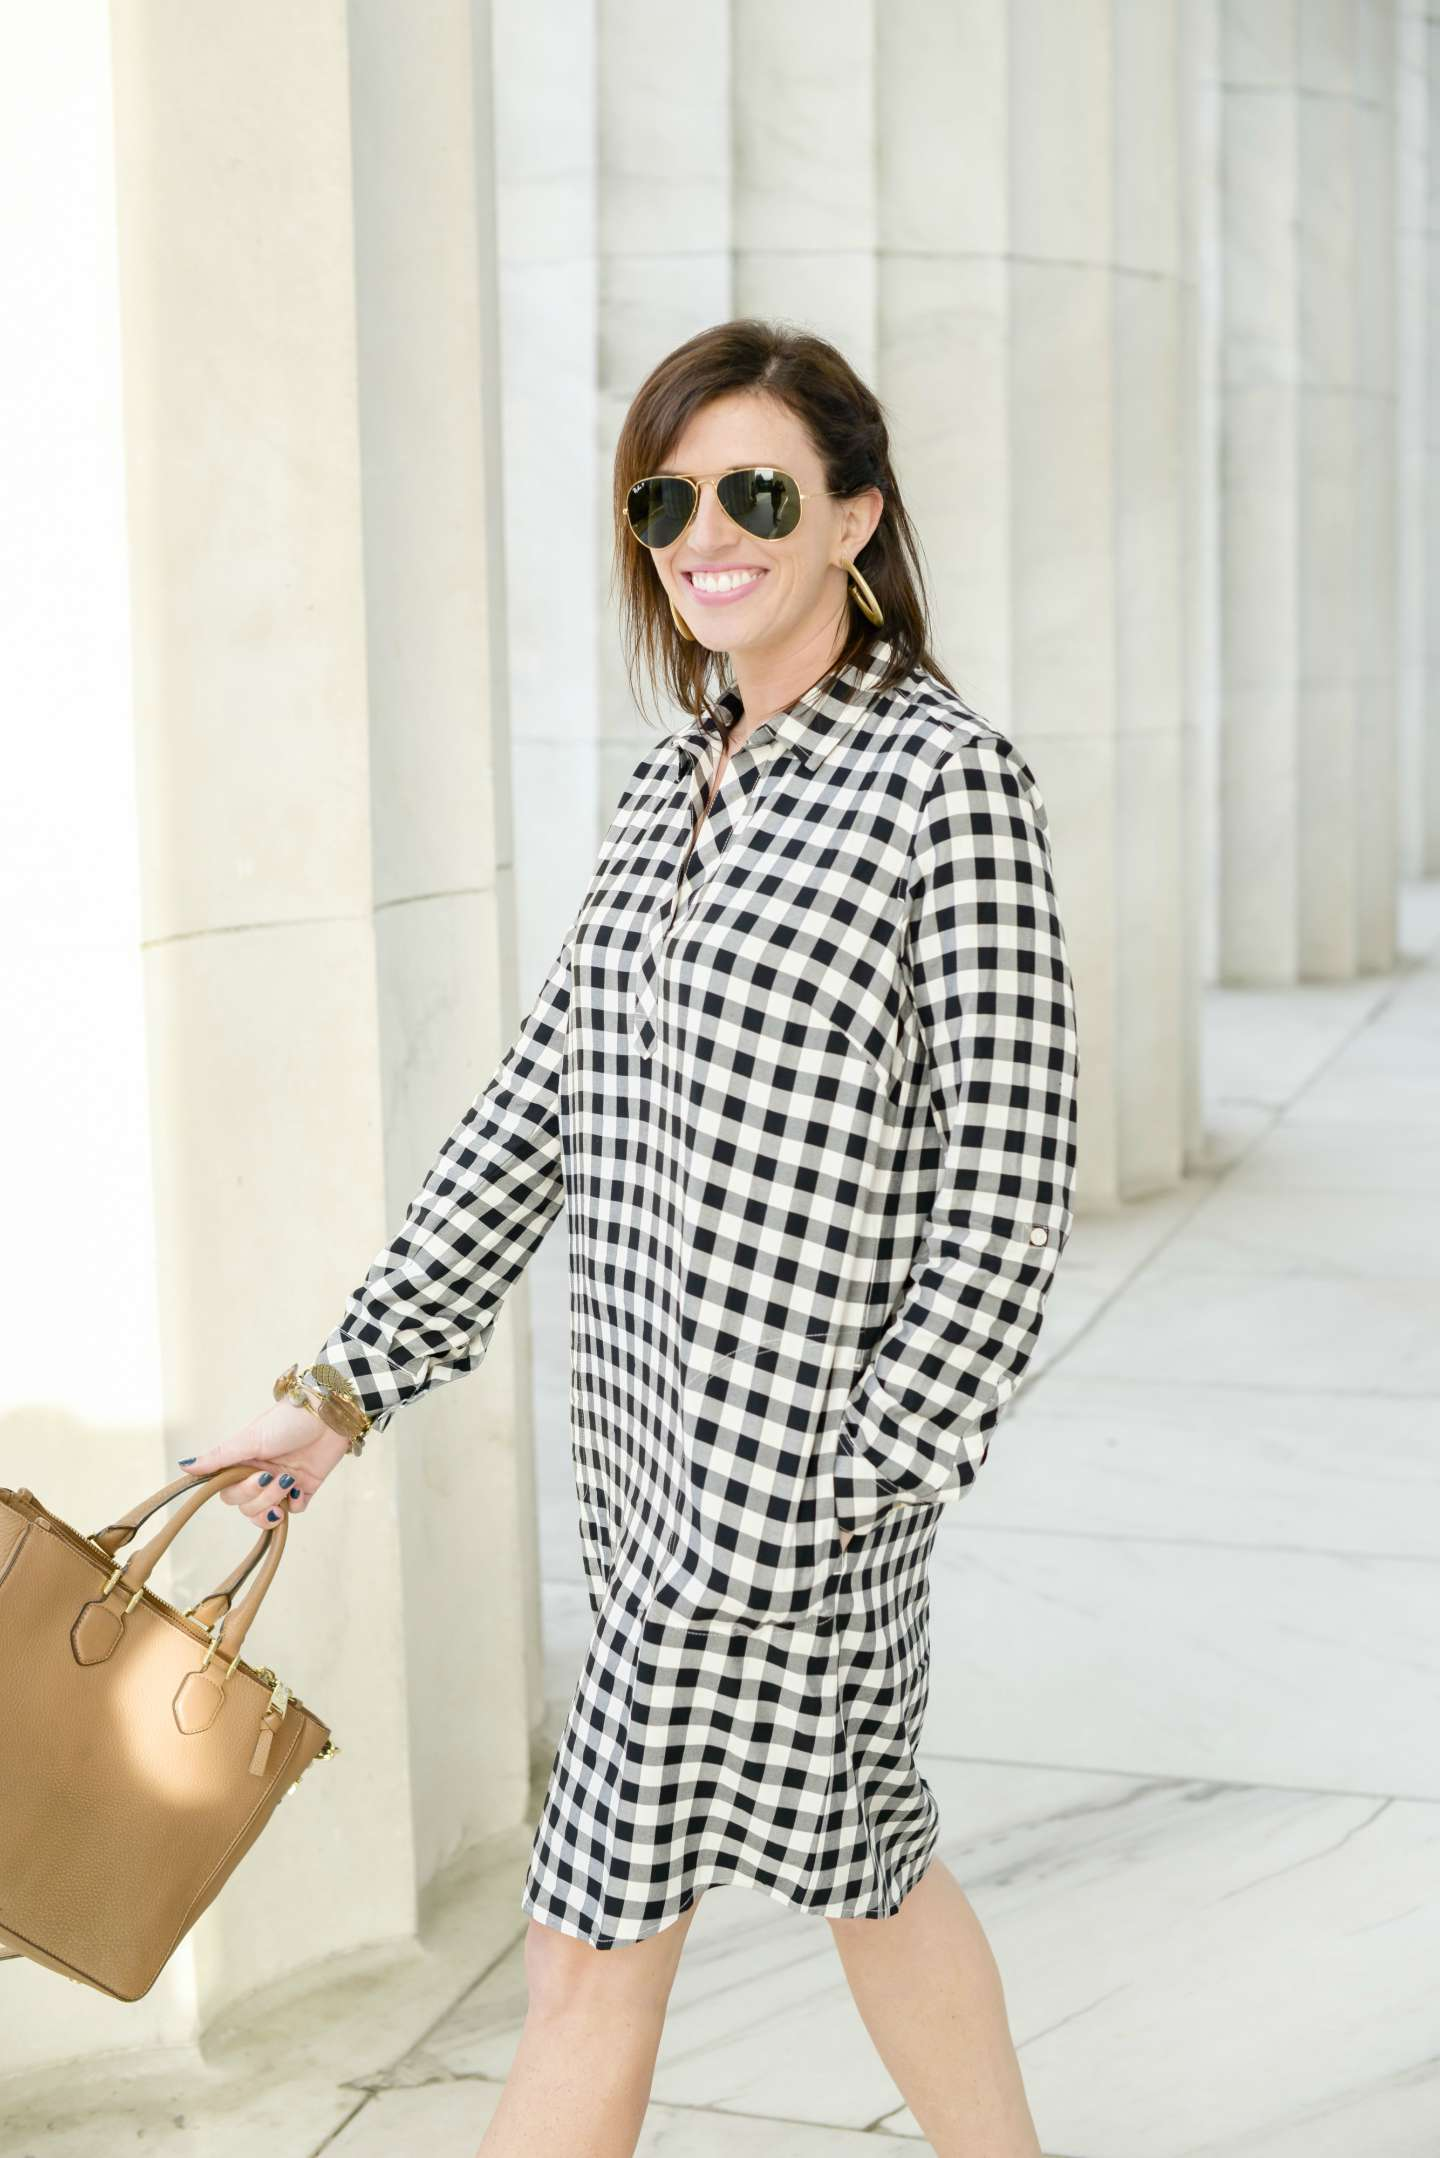 Gingham Shirt Dress + The Best Wedges for Spring - I'm Fixin' To - @mbg0112